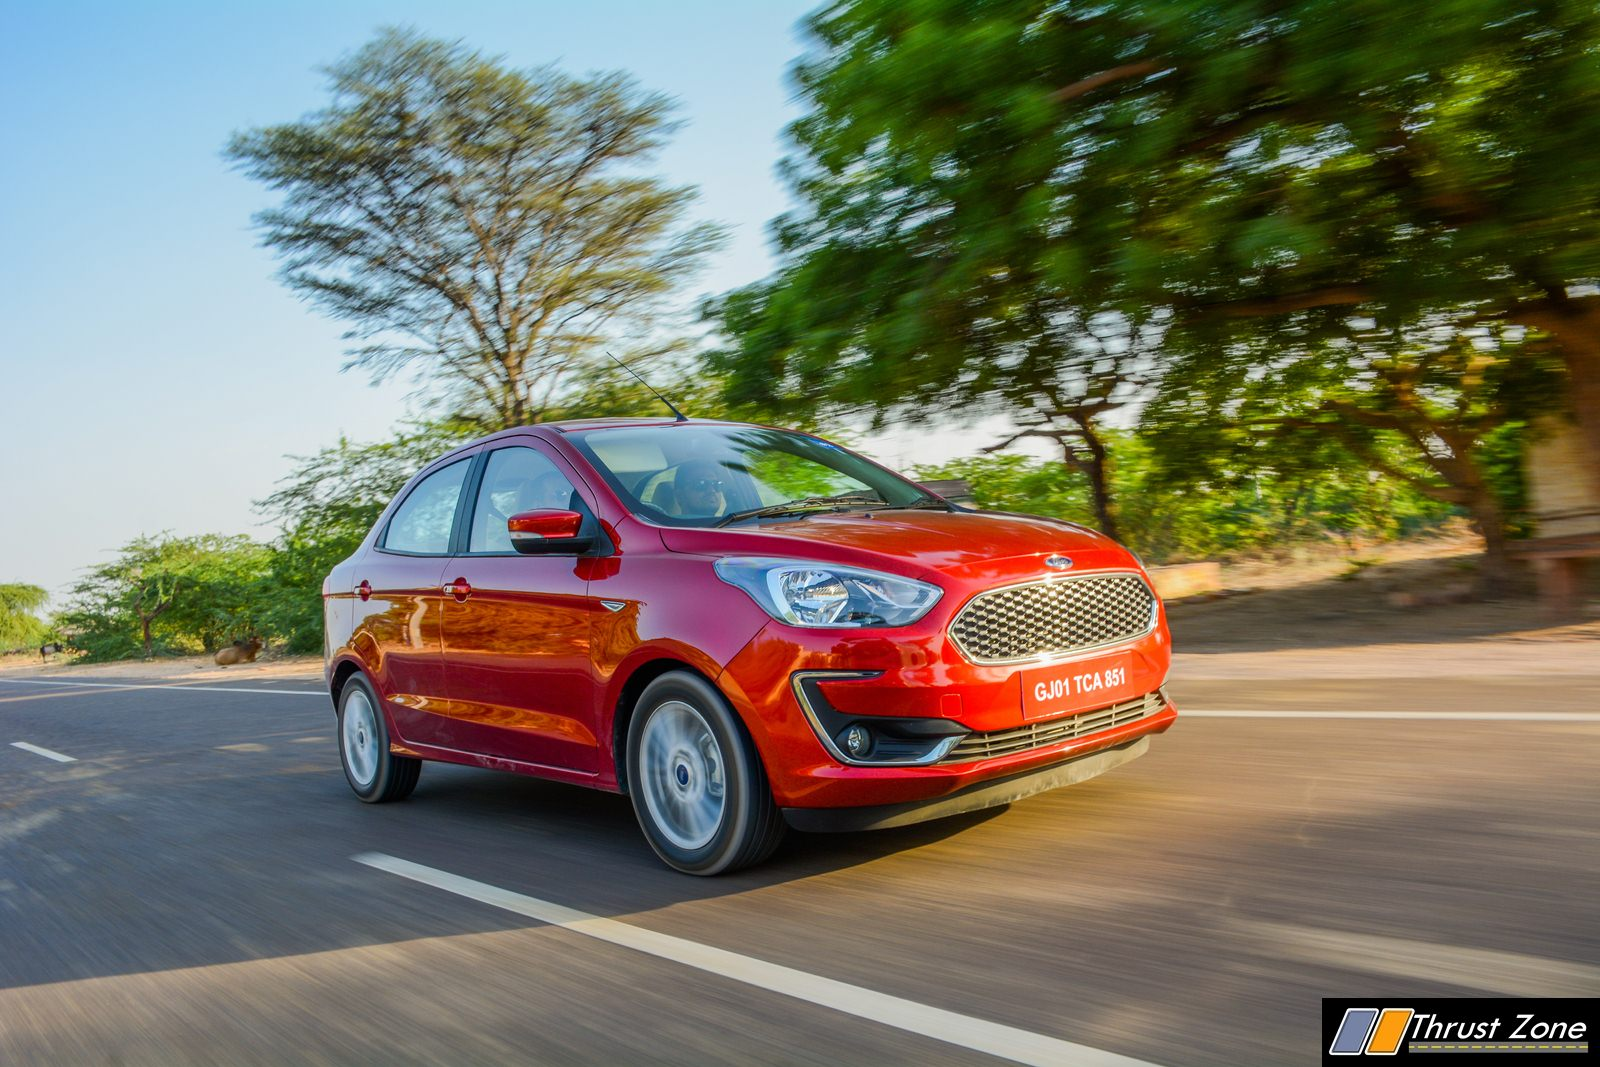 https://www.thrustzone.com/wp-content/uploads/2018/10/2018-Ford-Aspire-facelift-review-19.jpg